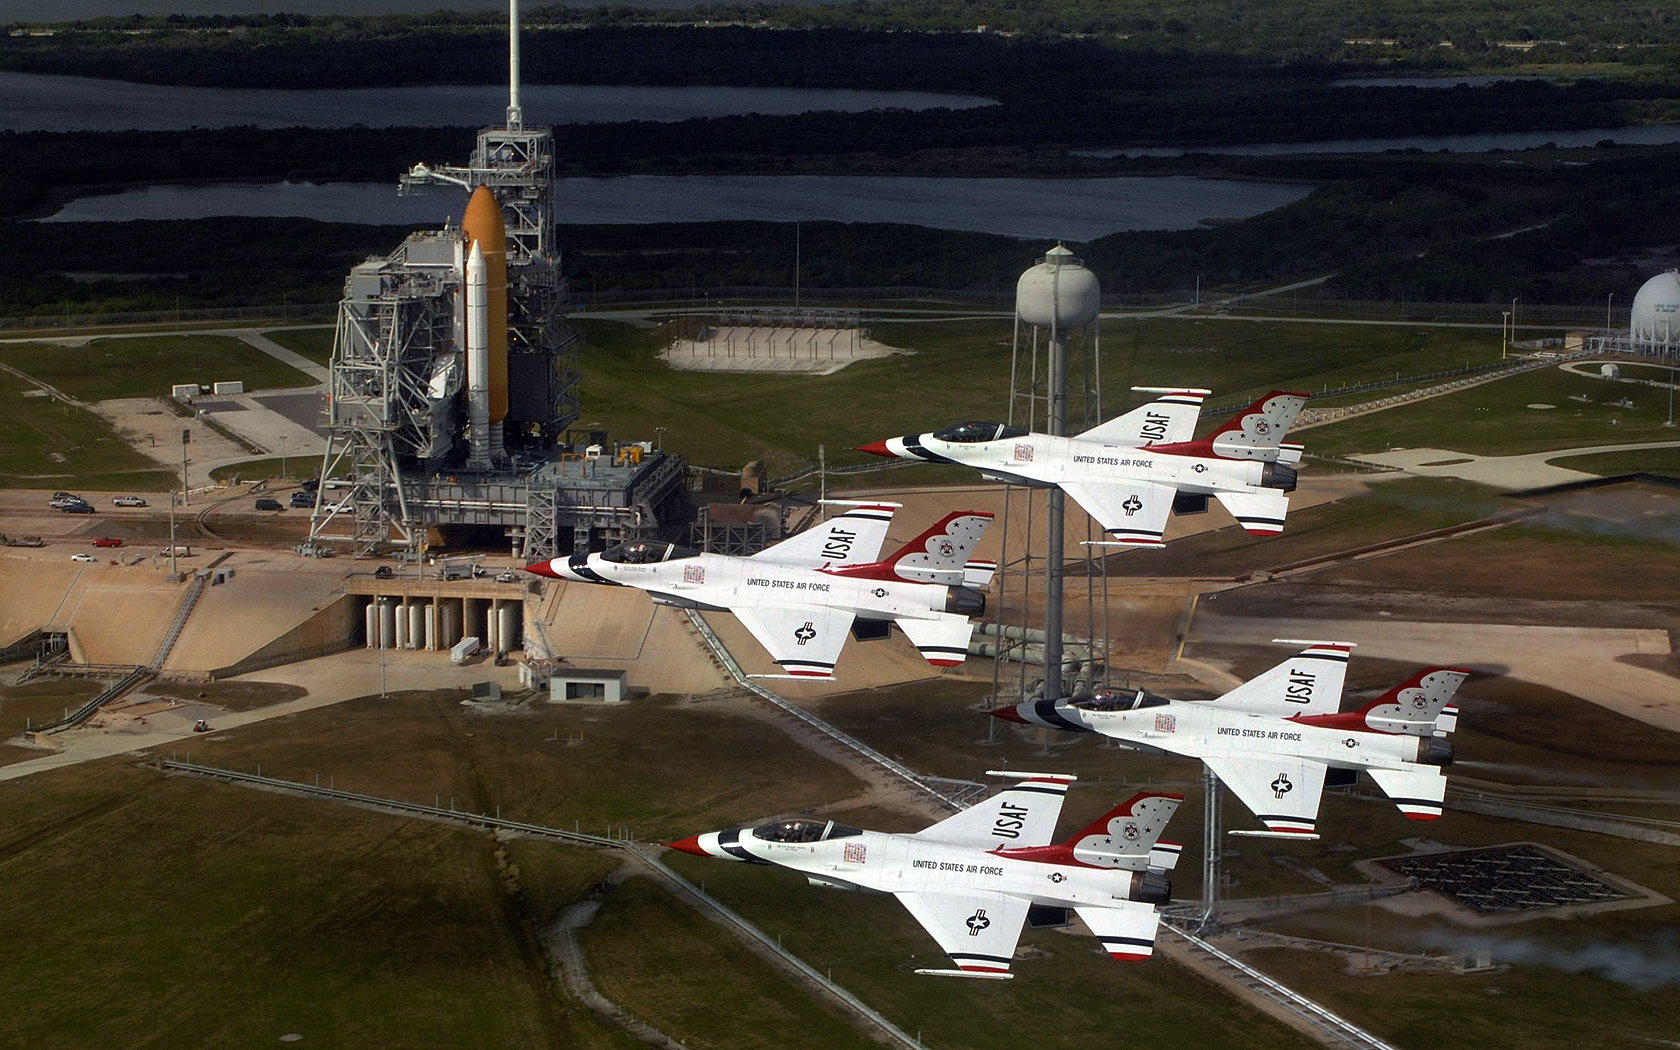 space shuttle vehicles - photo #42